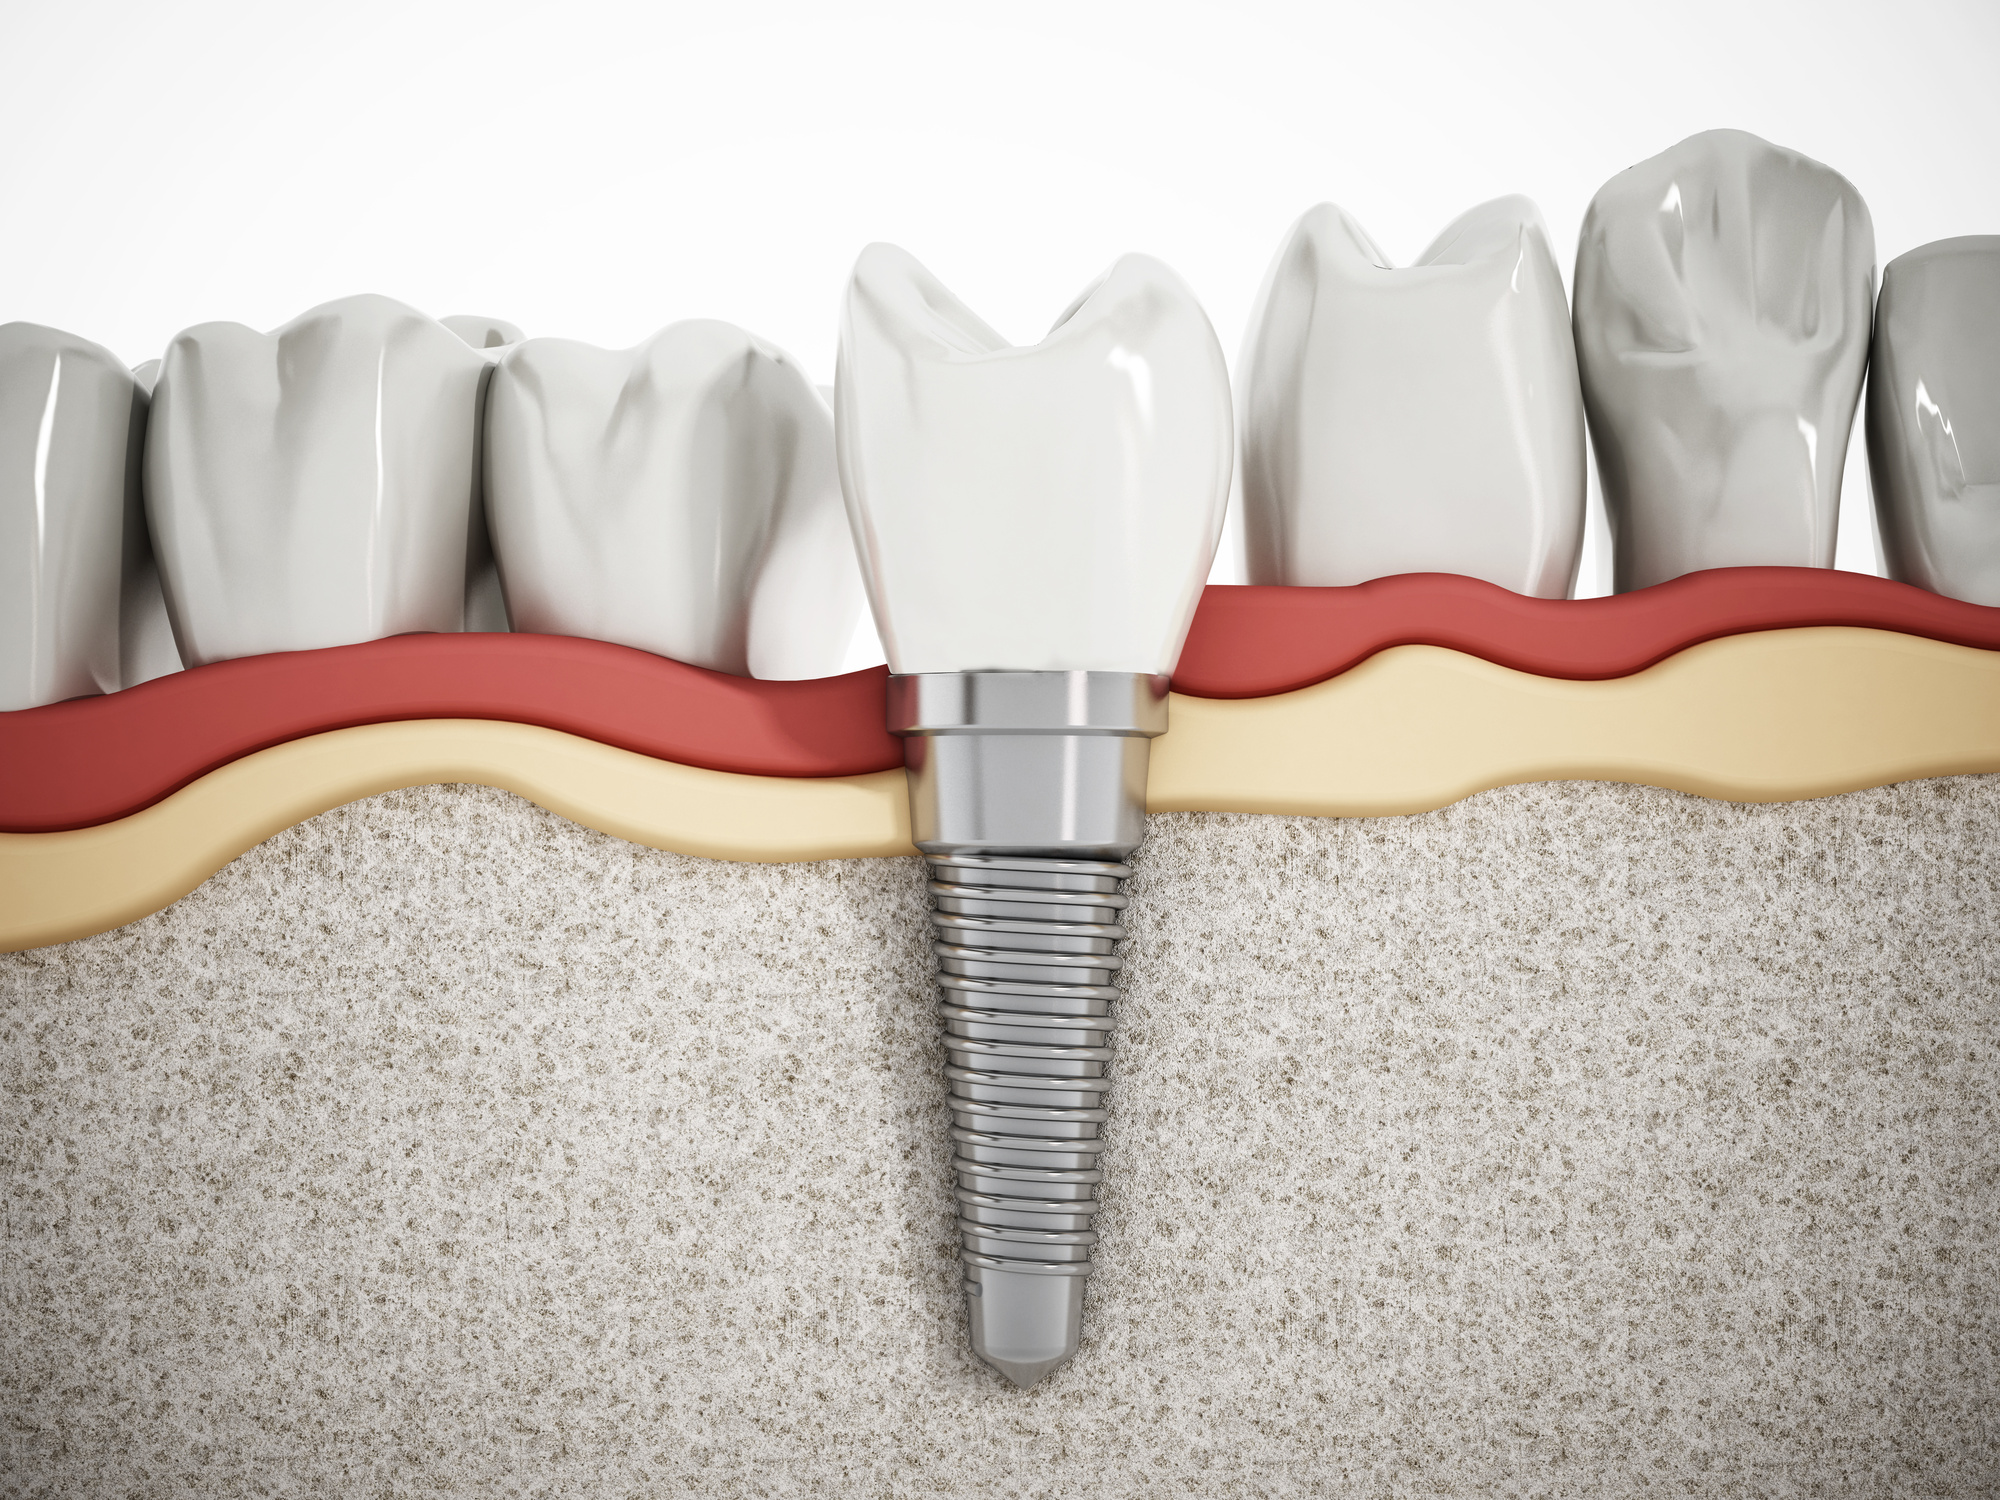 The Advantages of Getting a Single Tooth Implant